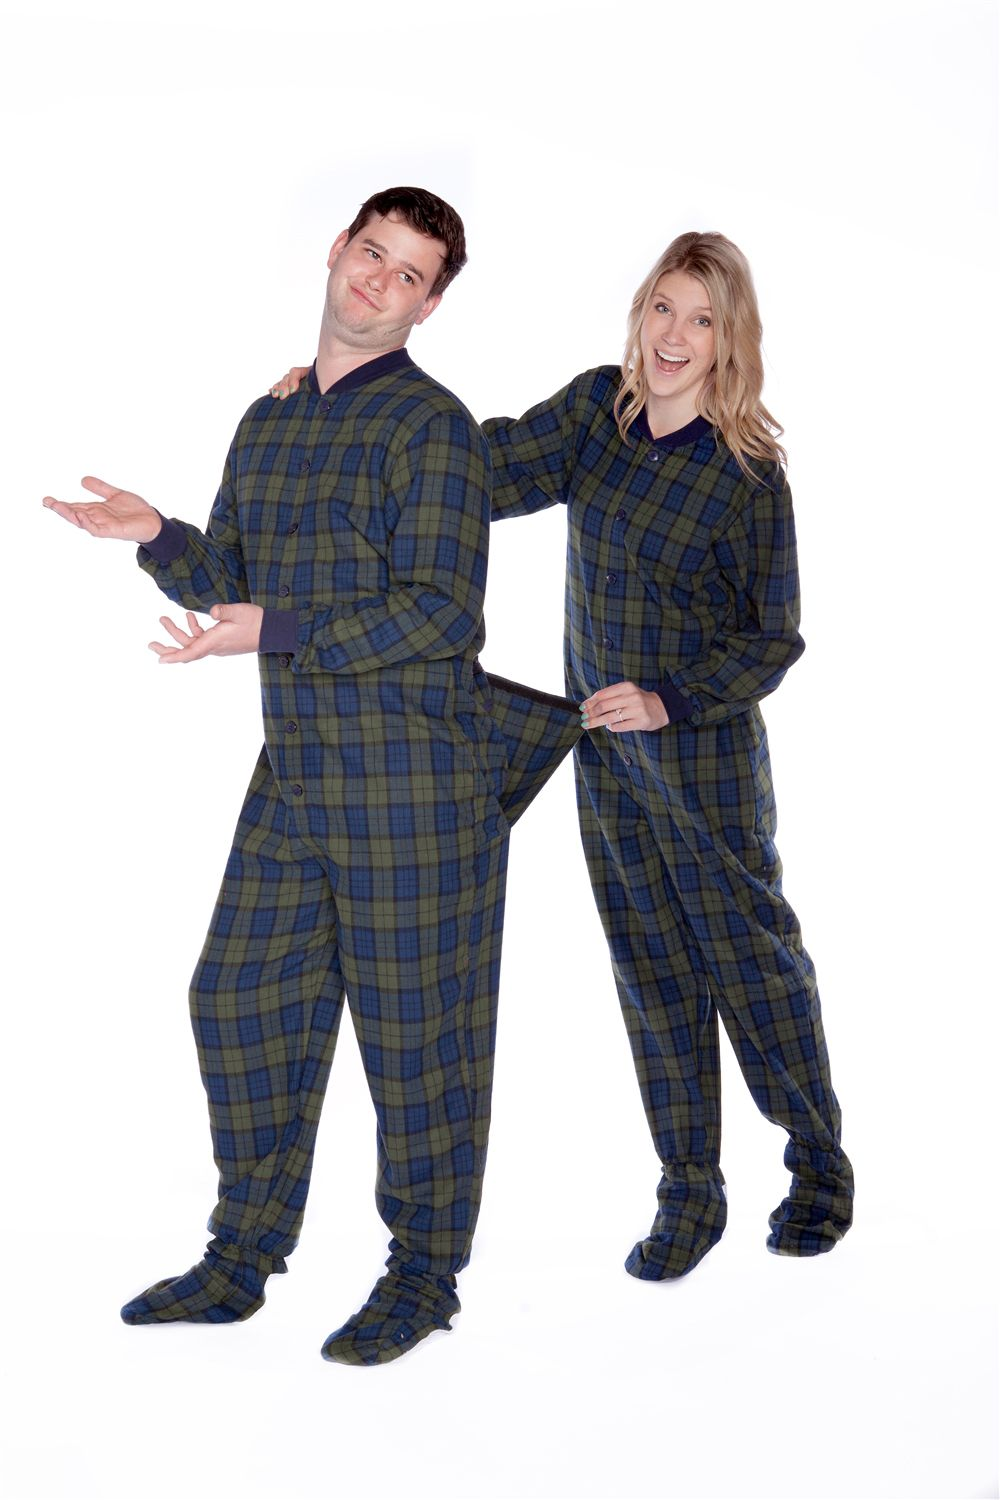 8a55d7fa1c17 Flannel Adult Footed Pajamas in Navy Blue and Green